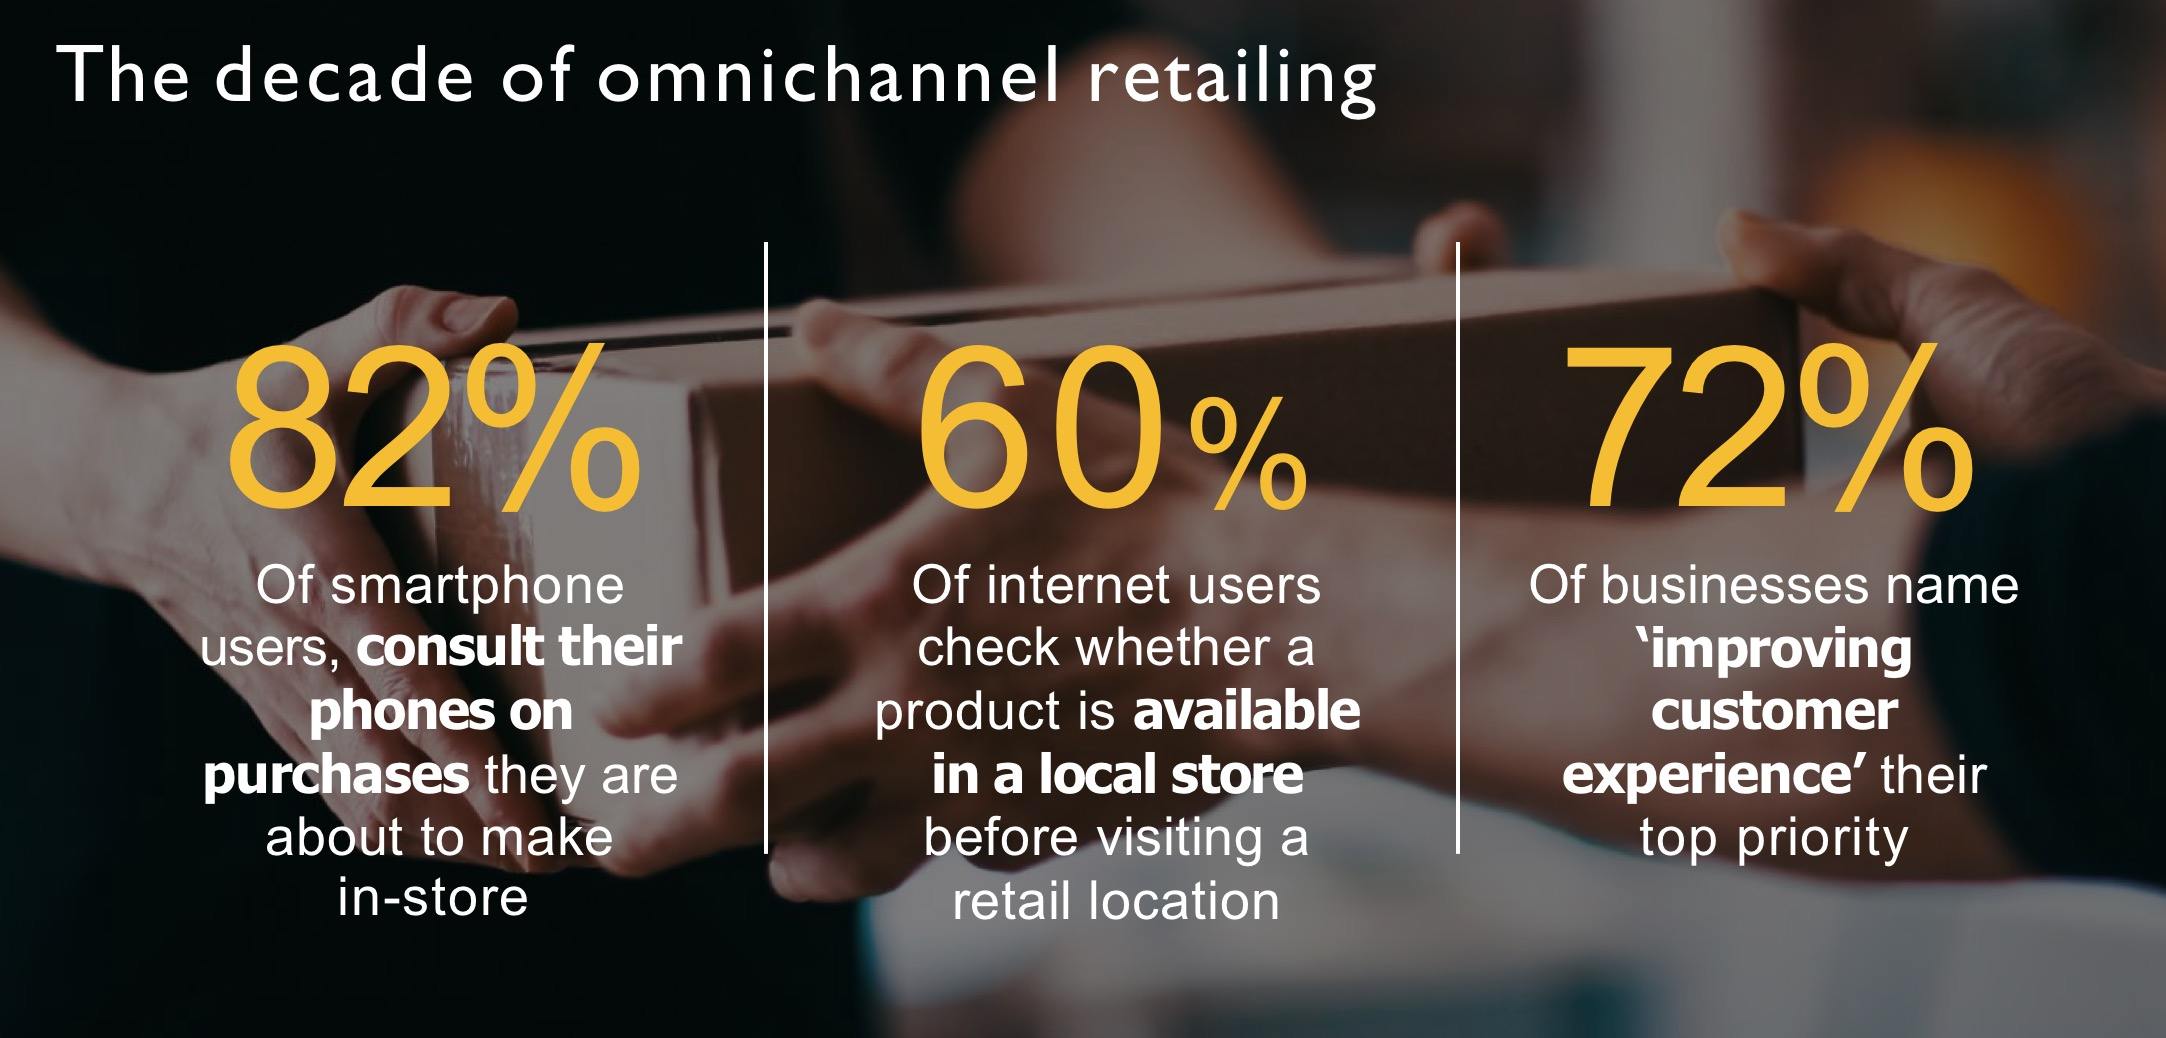 the-decade-of-omnichannel-retailing